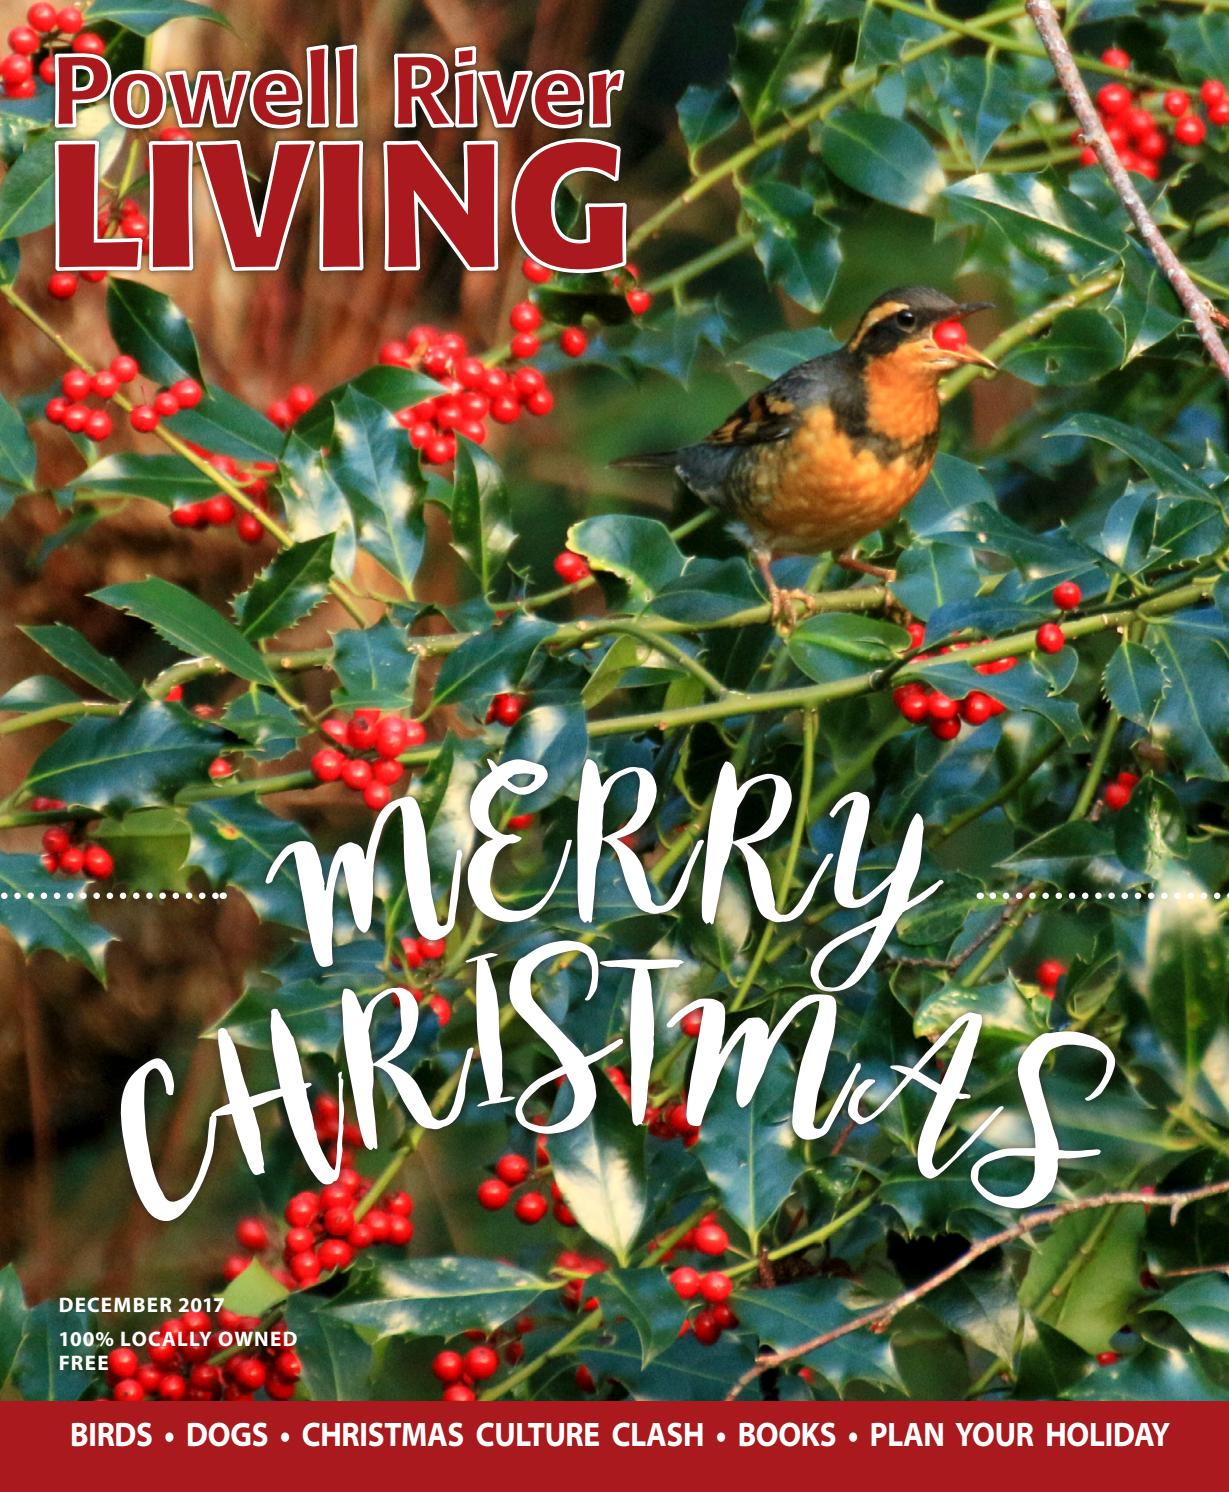 ad934dc96b Powell River Living December 2017 by Sean Percy - issuu